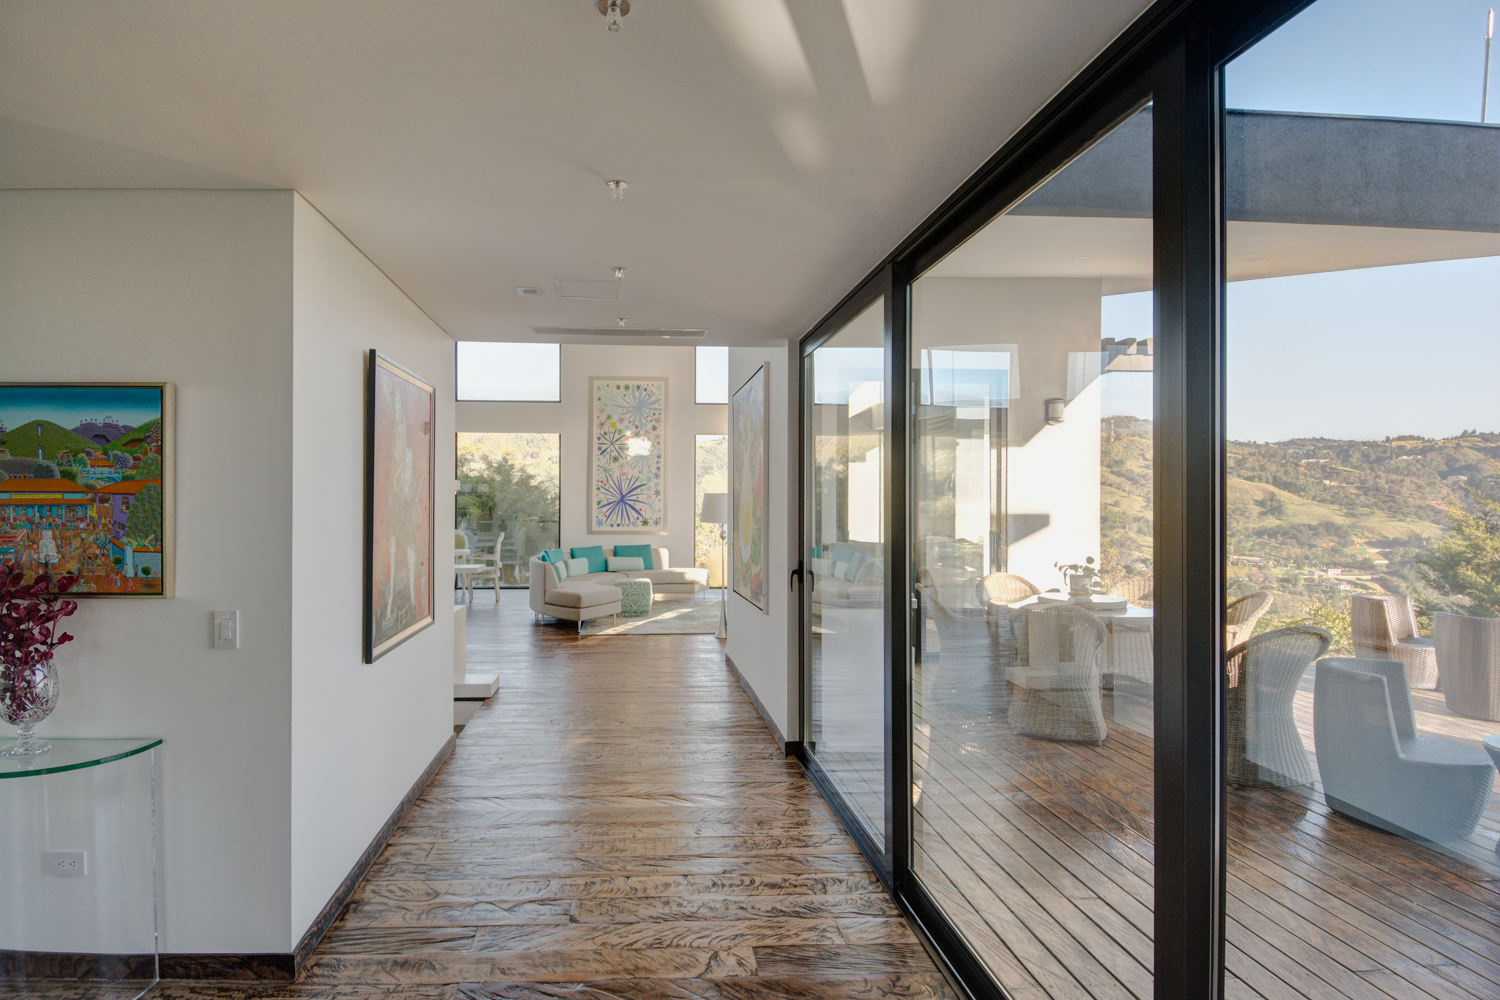 Hallway with large sliding doors onto deck